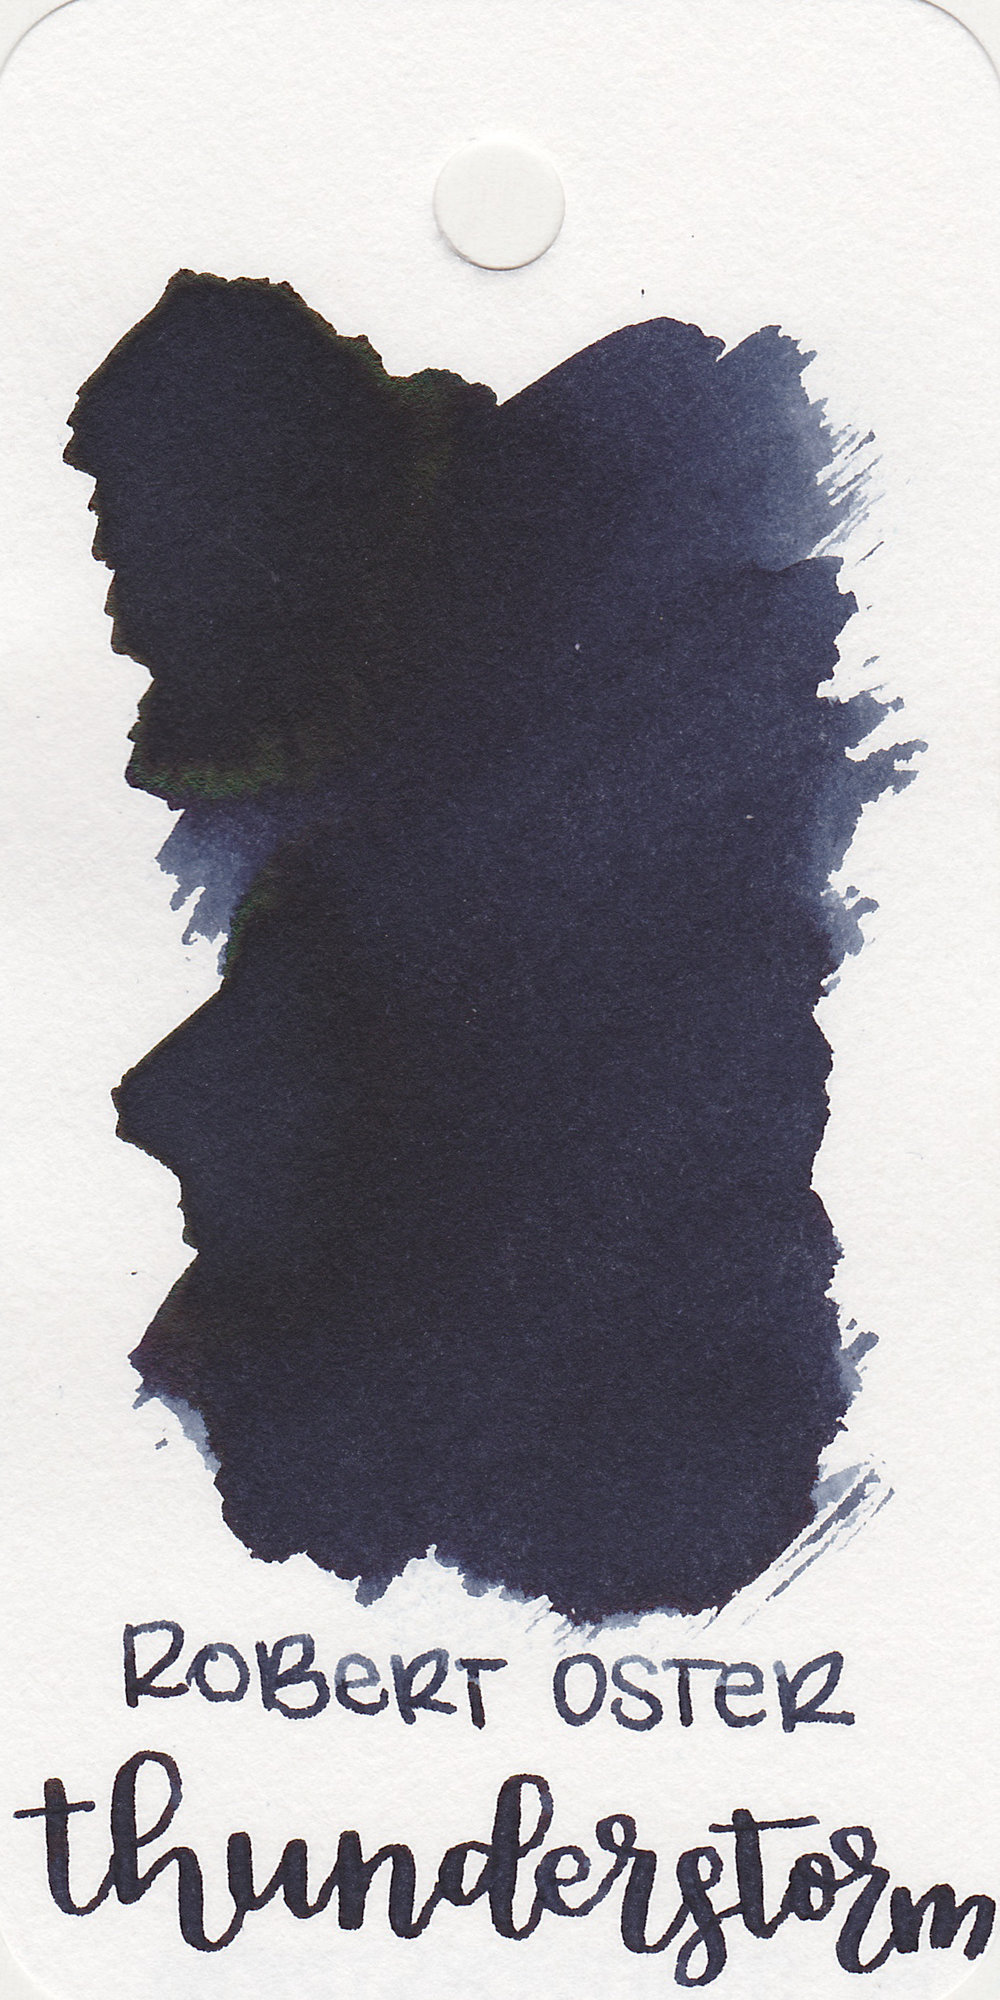 The color: - Thunderstorm is a beautiful dark blue black. It is the color of the sky during a thunderstorm.